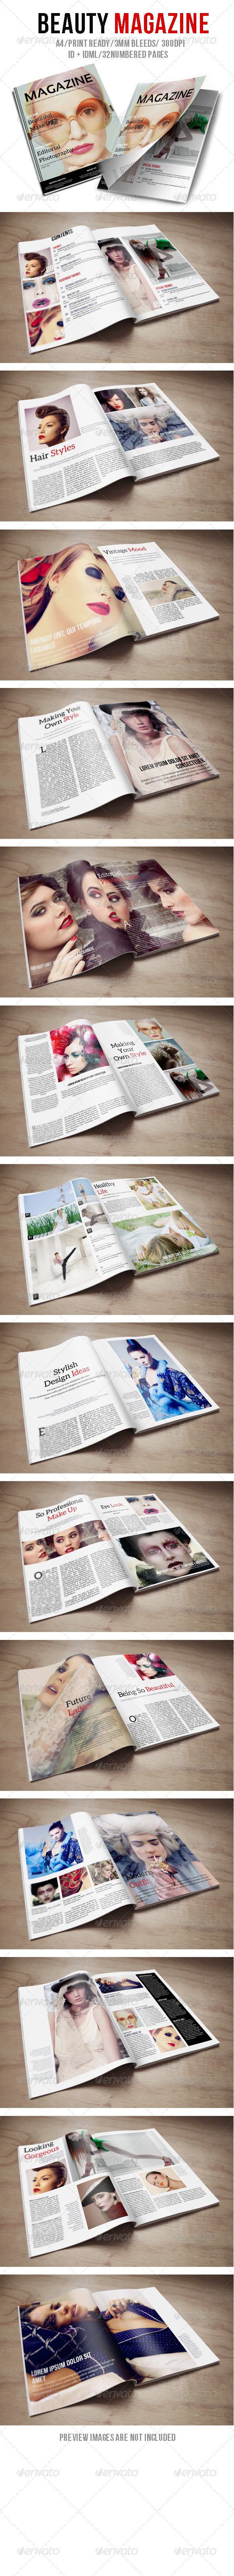 GraphicRiver Beauty Magazine 6046255